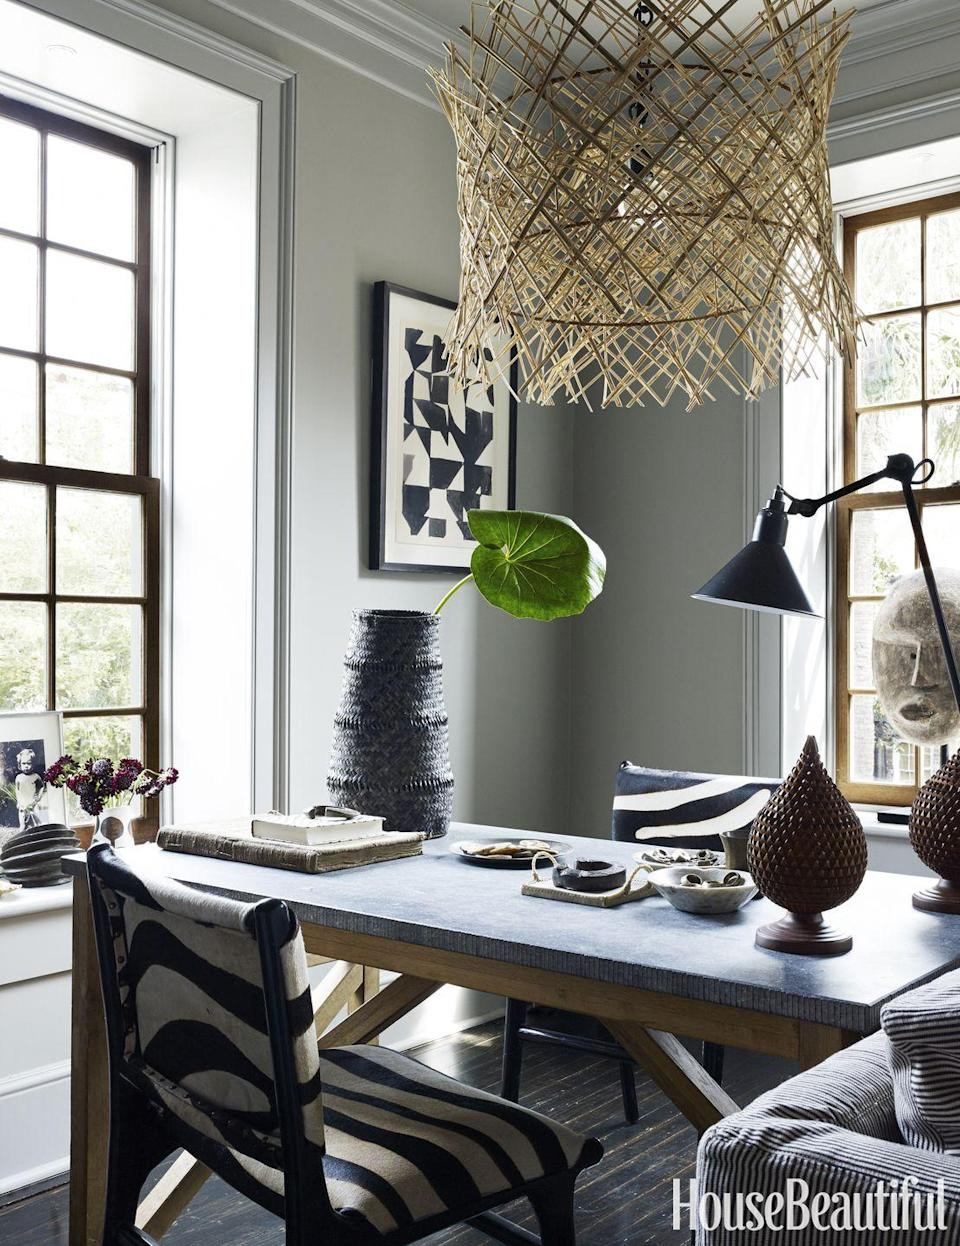 """<p>To totally transport yourself somewhere way more exciting than your work, try an bold pattern, like the black-and-white zebra motif in this <a href=""""https://www.housebeautiful.com/design-inspiration/house-tours/g3558/jill-sharp-weeks-charleston-rental-tour """" rel=""""nofollow noopener"""" target=""""_blank"""" data-ylk=""""slk:Charleston home office"""" class=""""link rapid-noclick-resp"""">Charleston home office</a>. A rattan chandelier adds texture.</p>"""